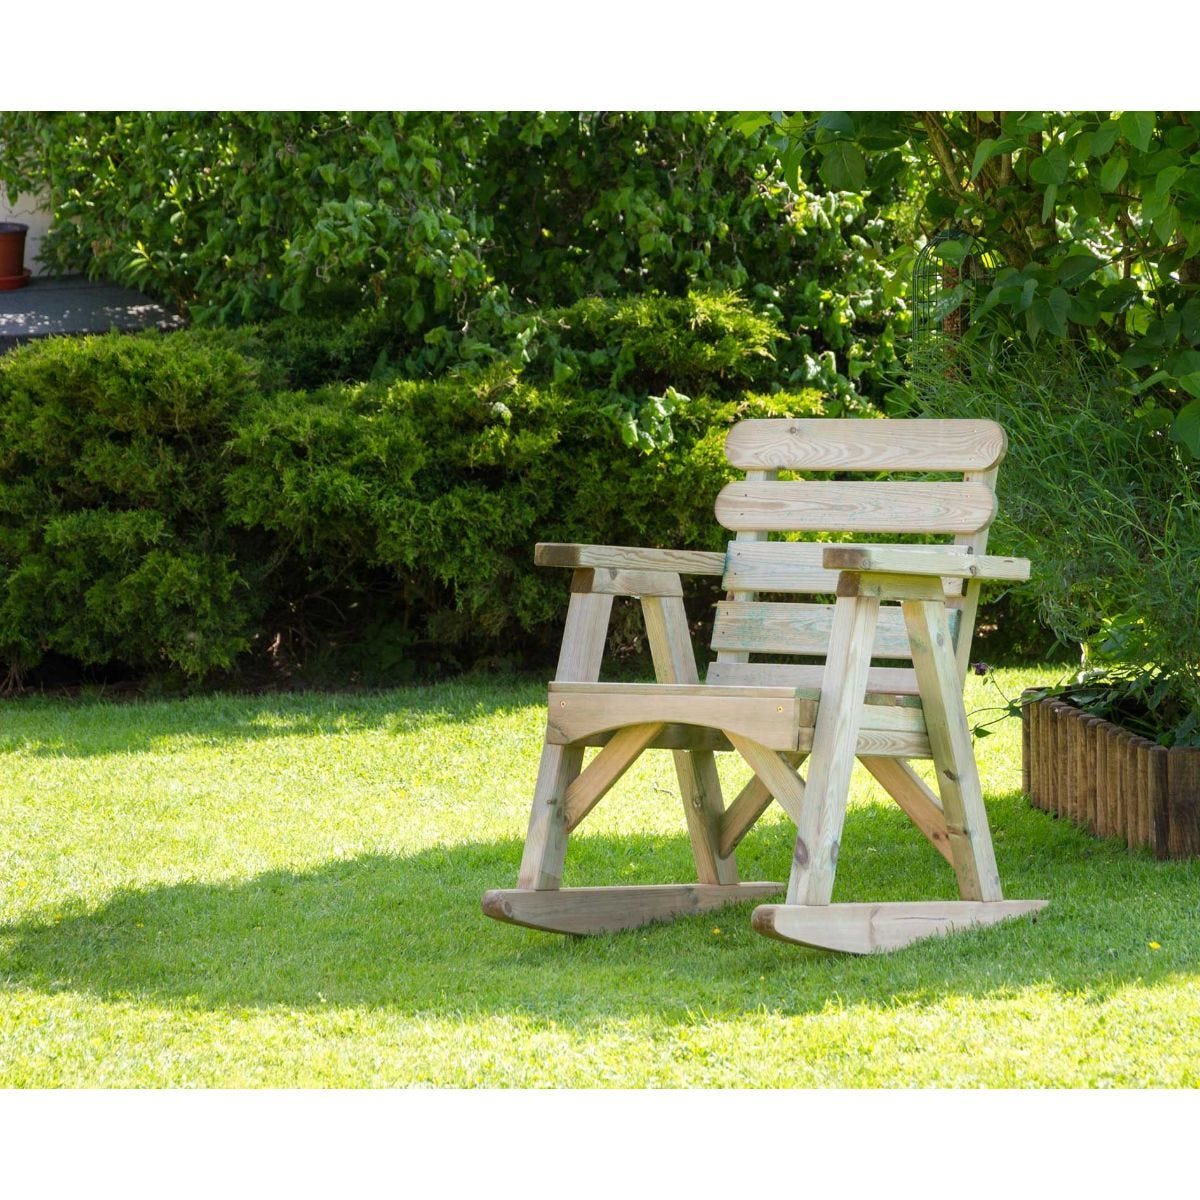 Abbey Outdoor Rocking Chair